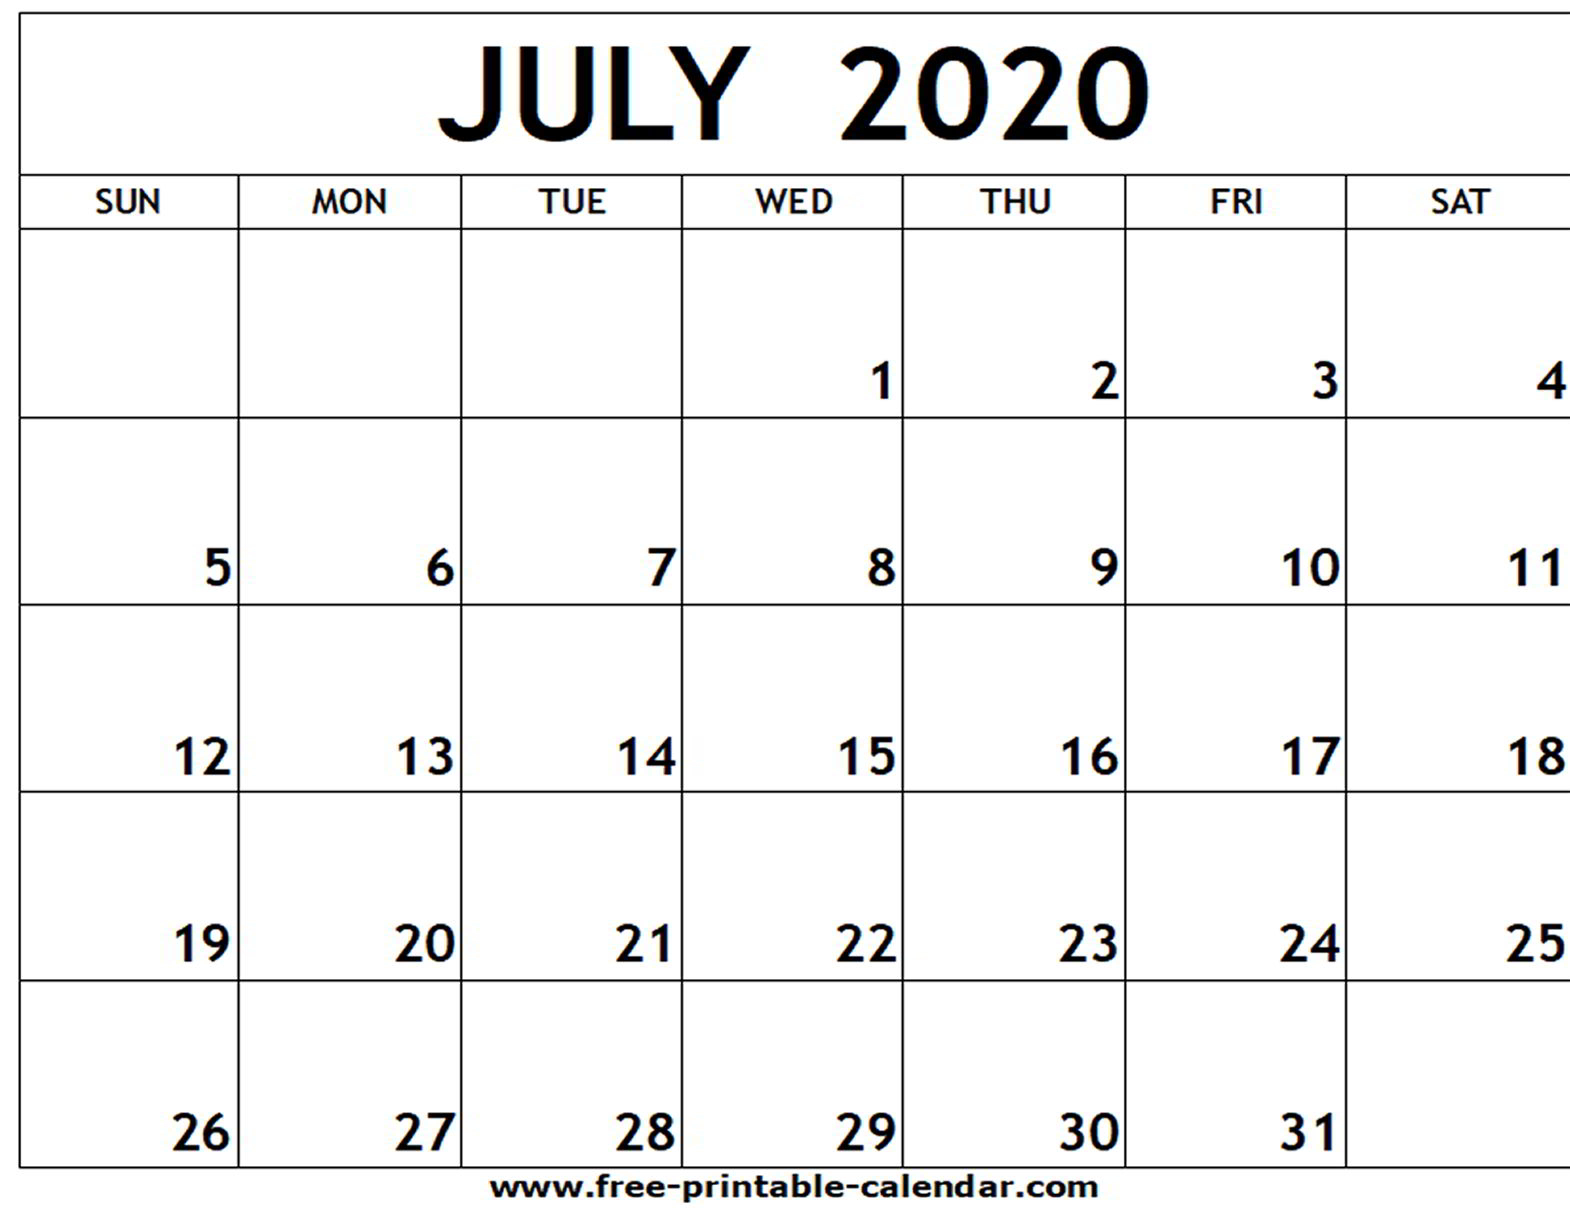 July 2020 June 2020 Calendar - Wpa.wpart.co